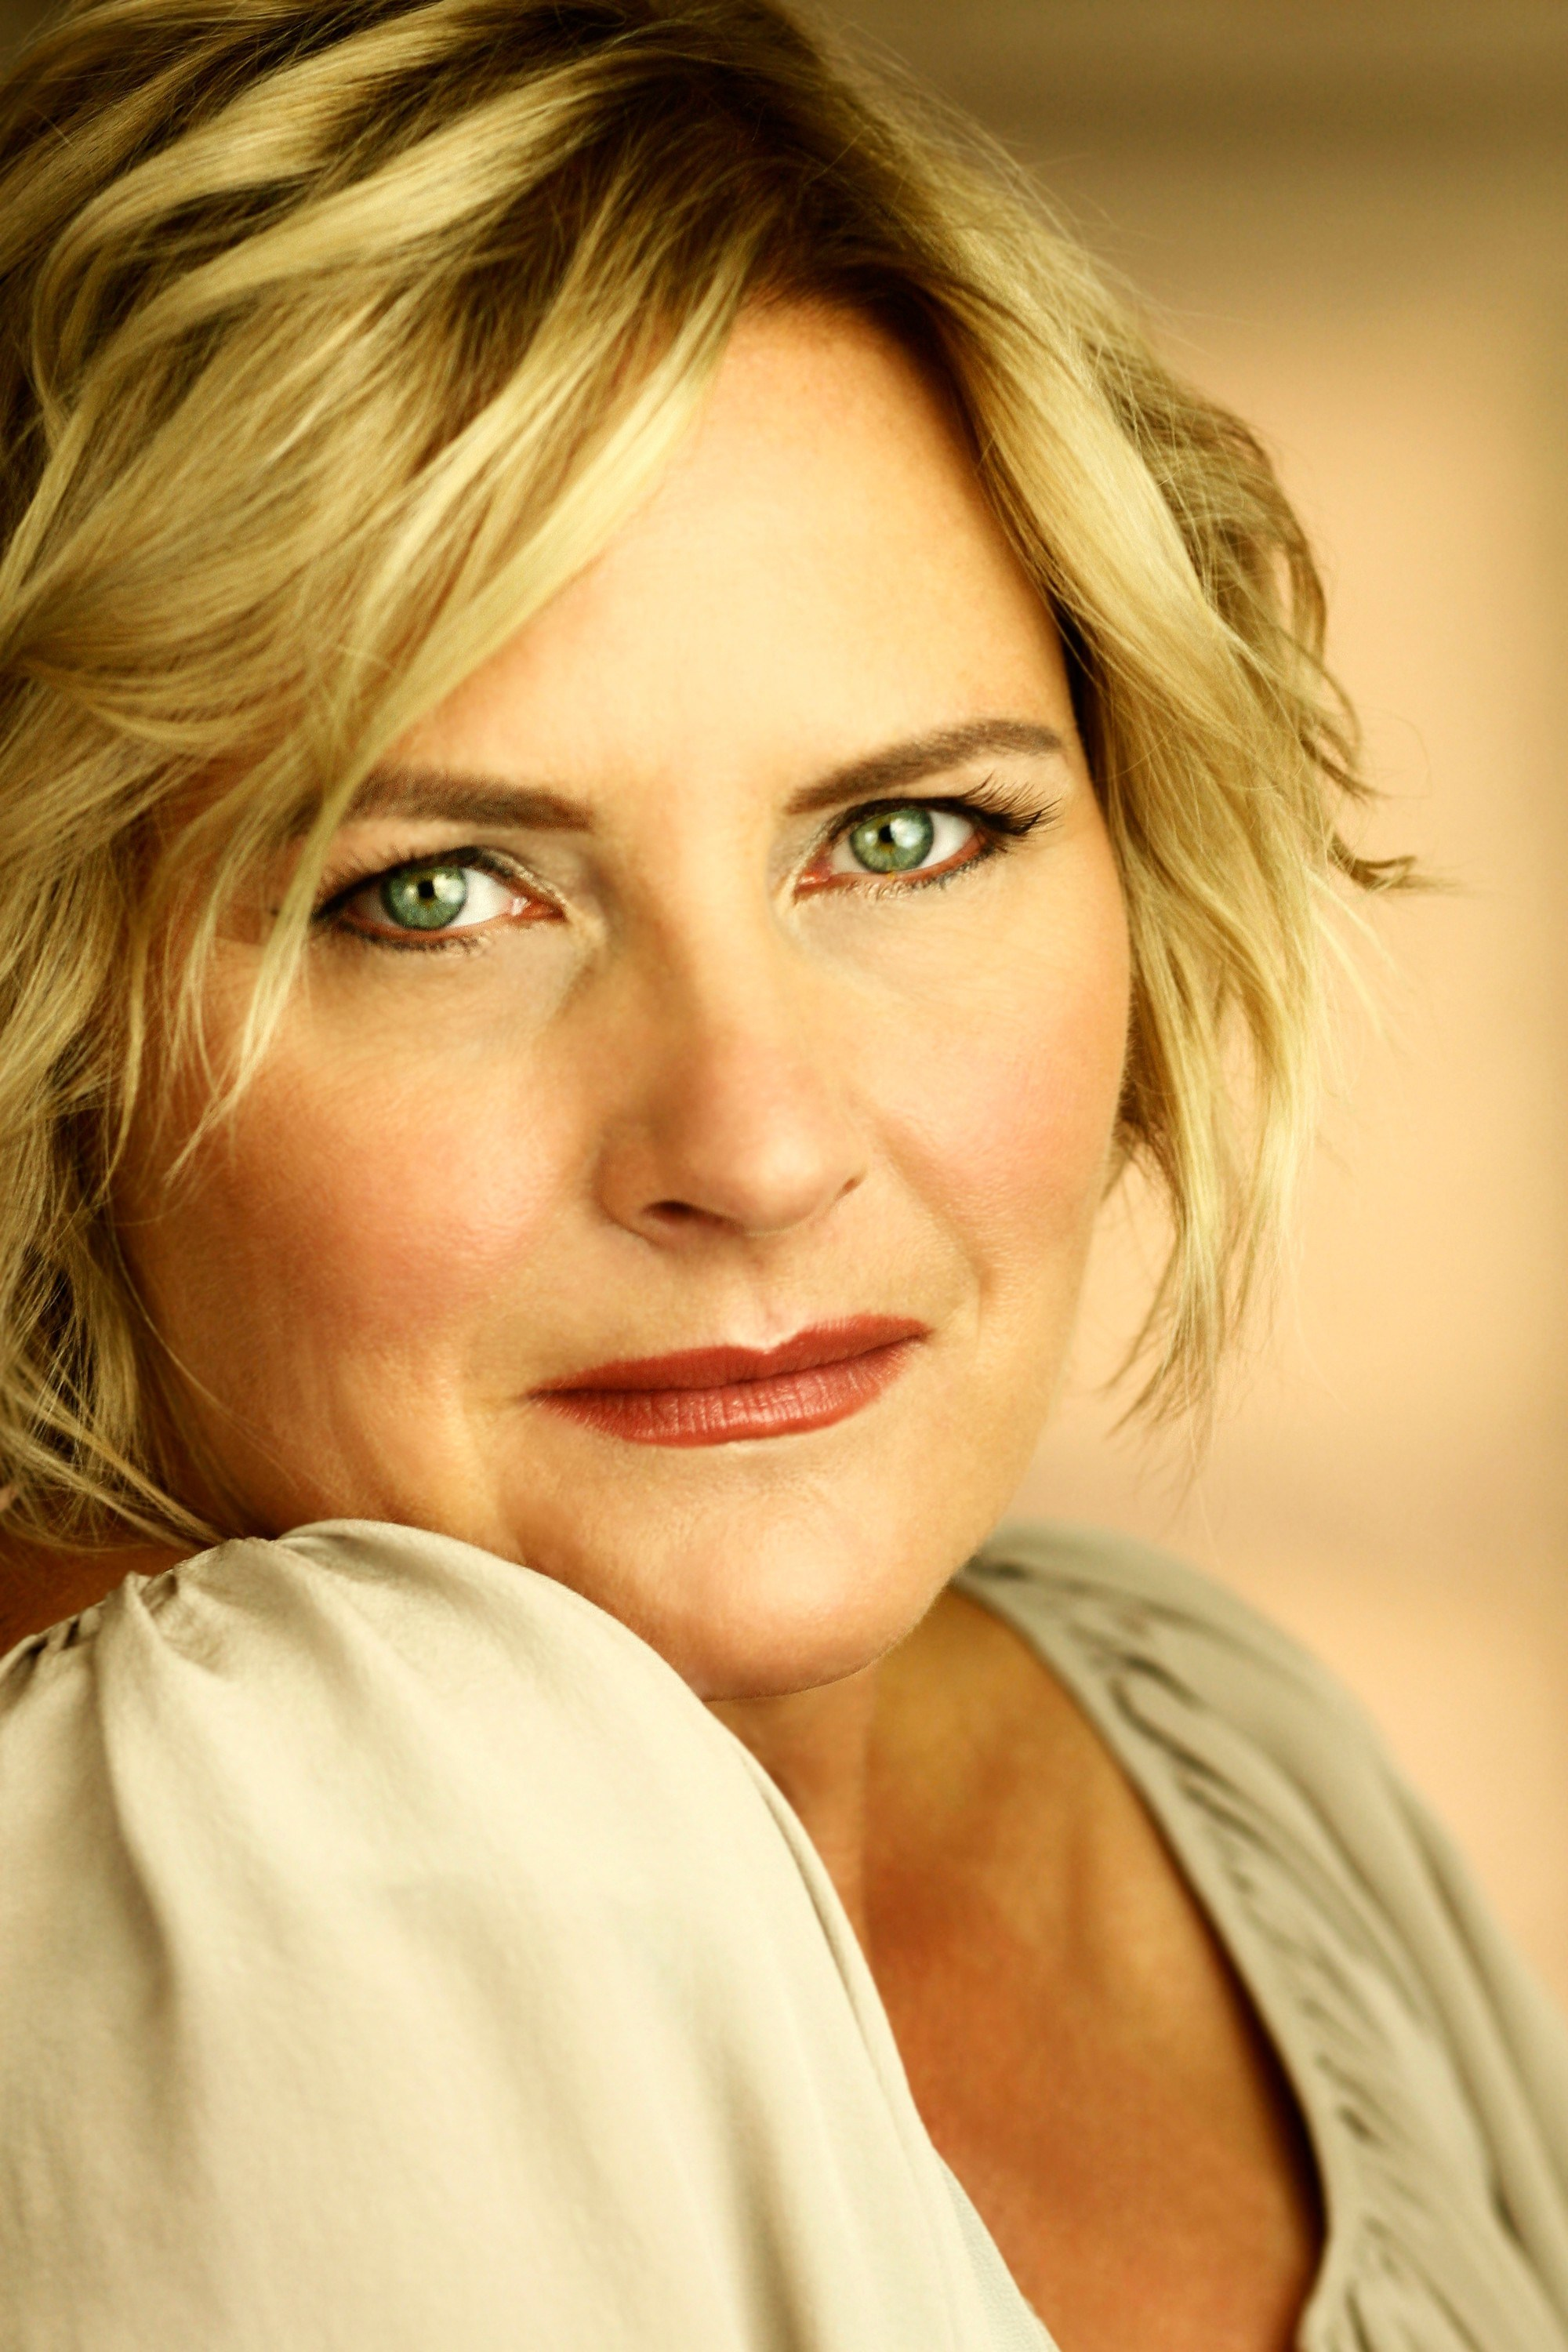 Denise crosby online picture 9